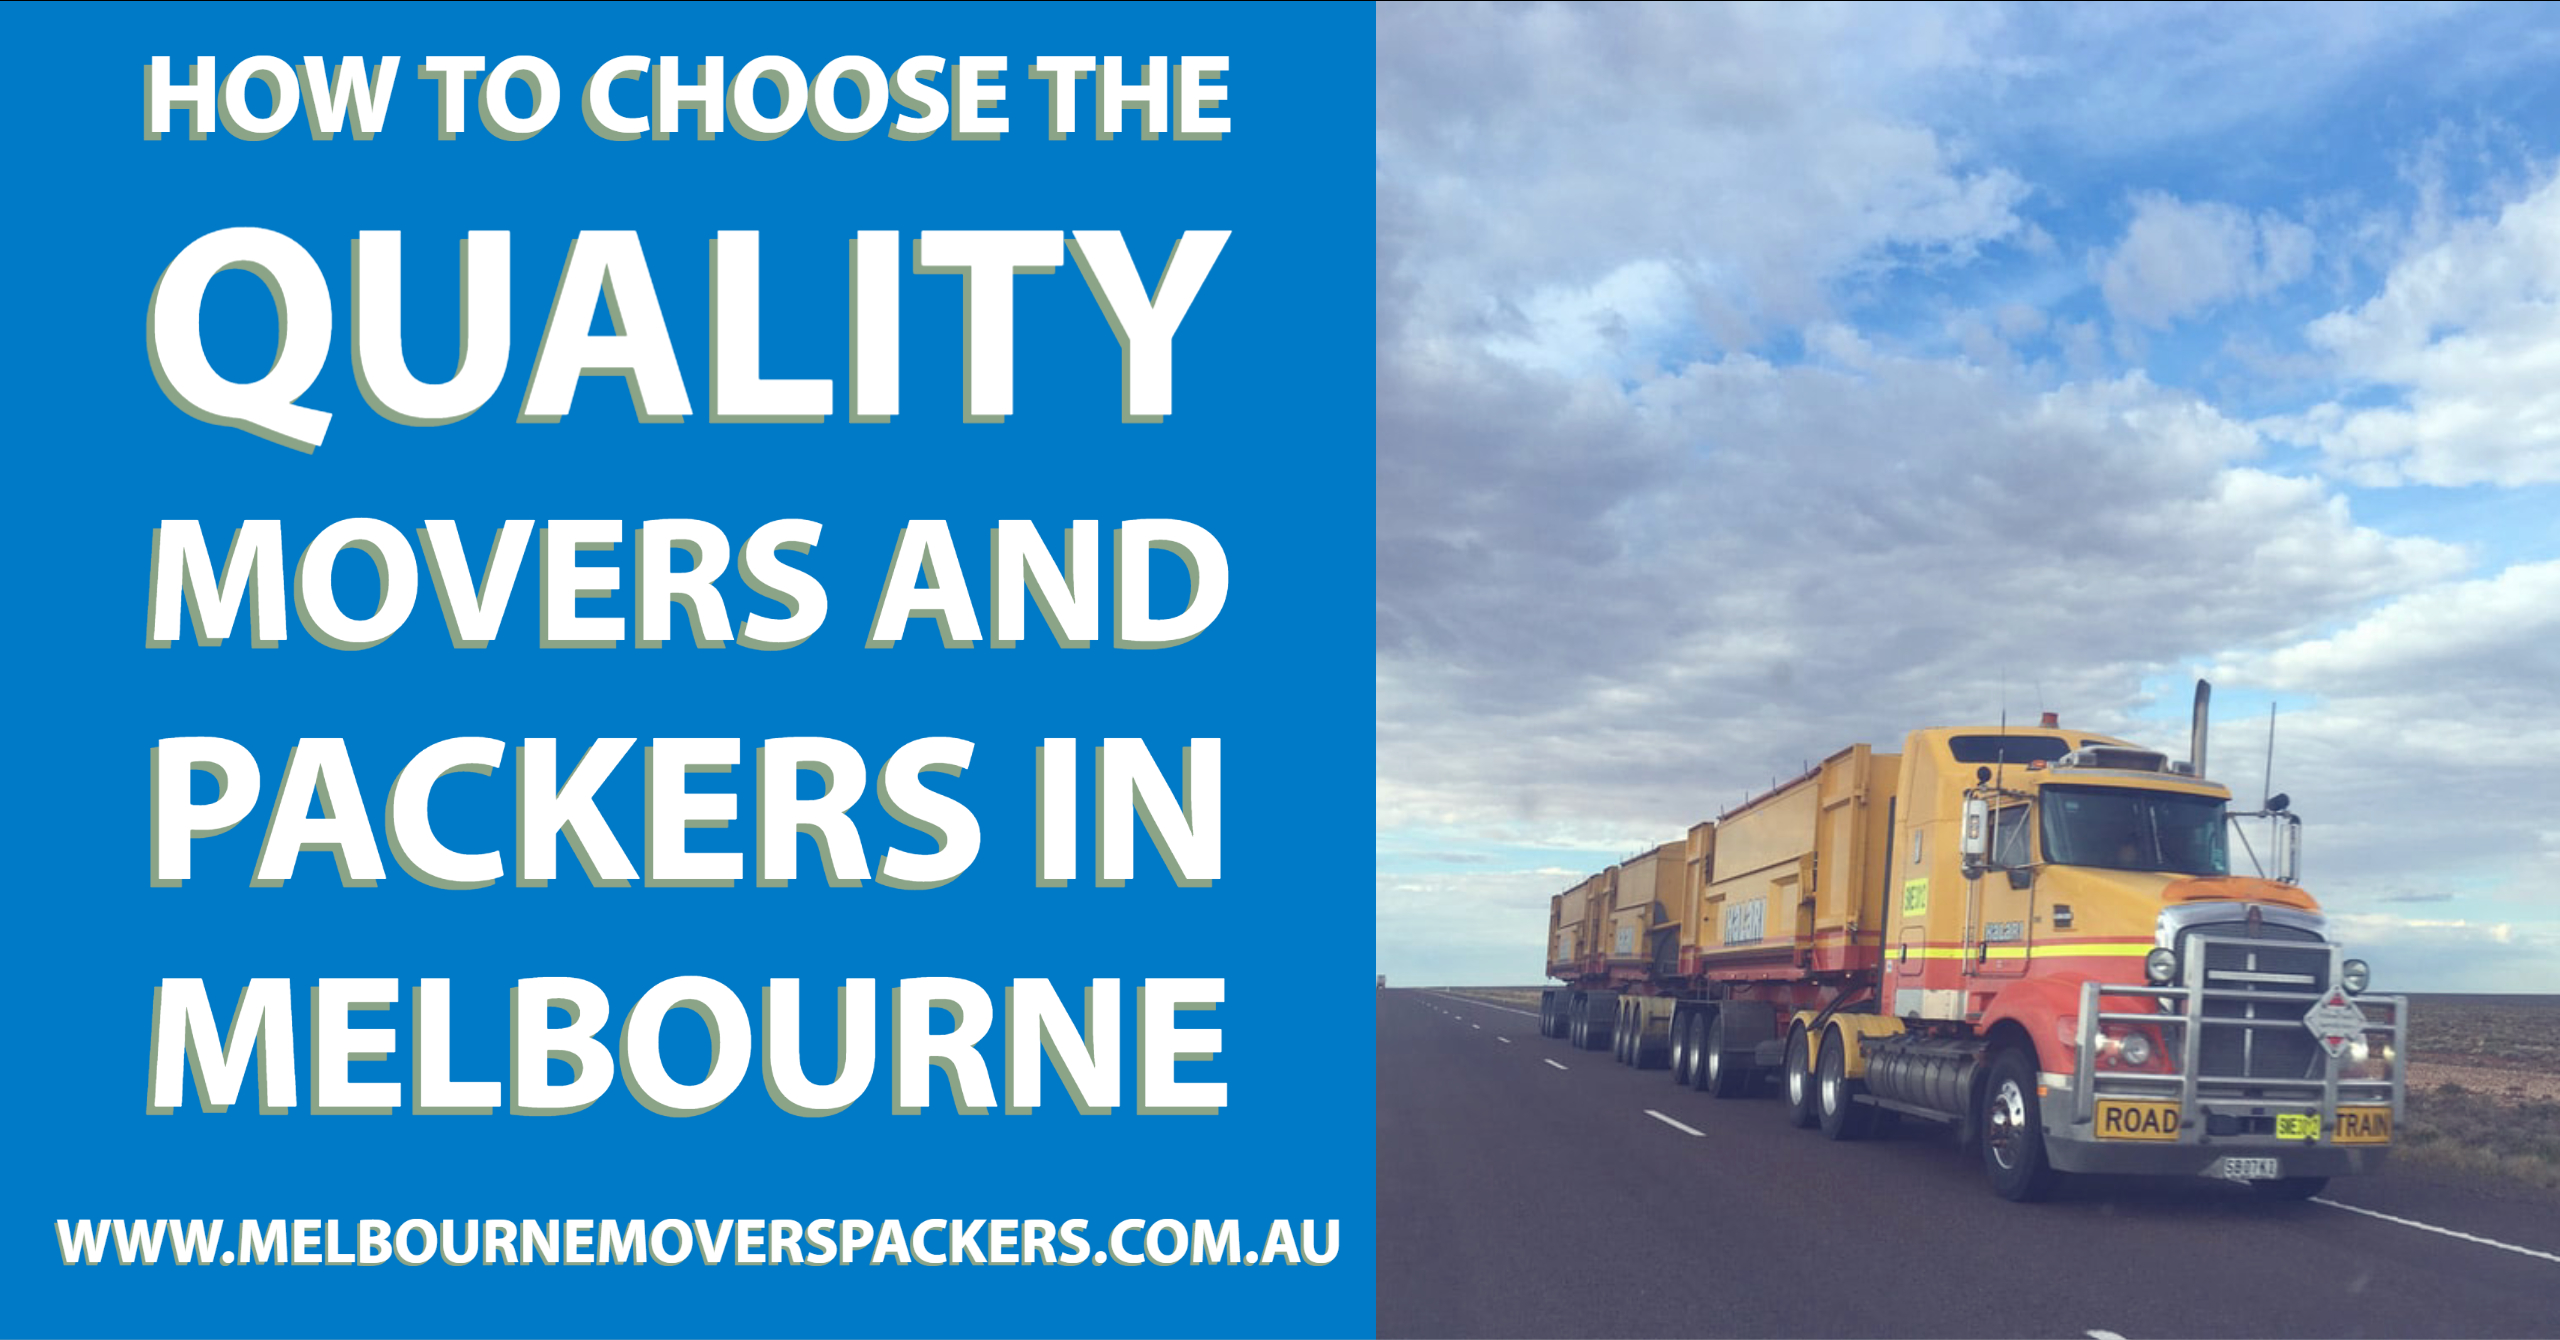 How to Choose the Quality Movers and Packers in Melbourne